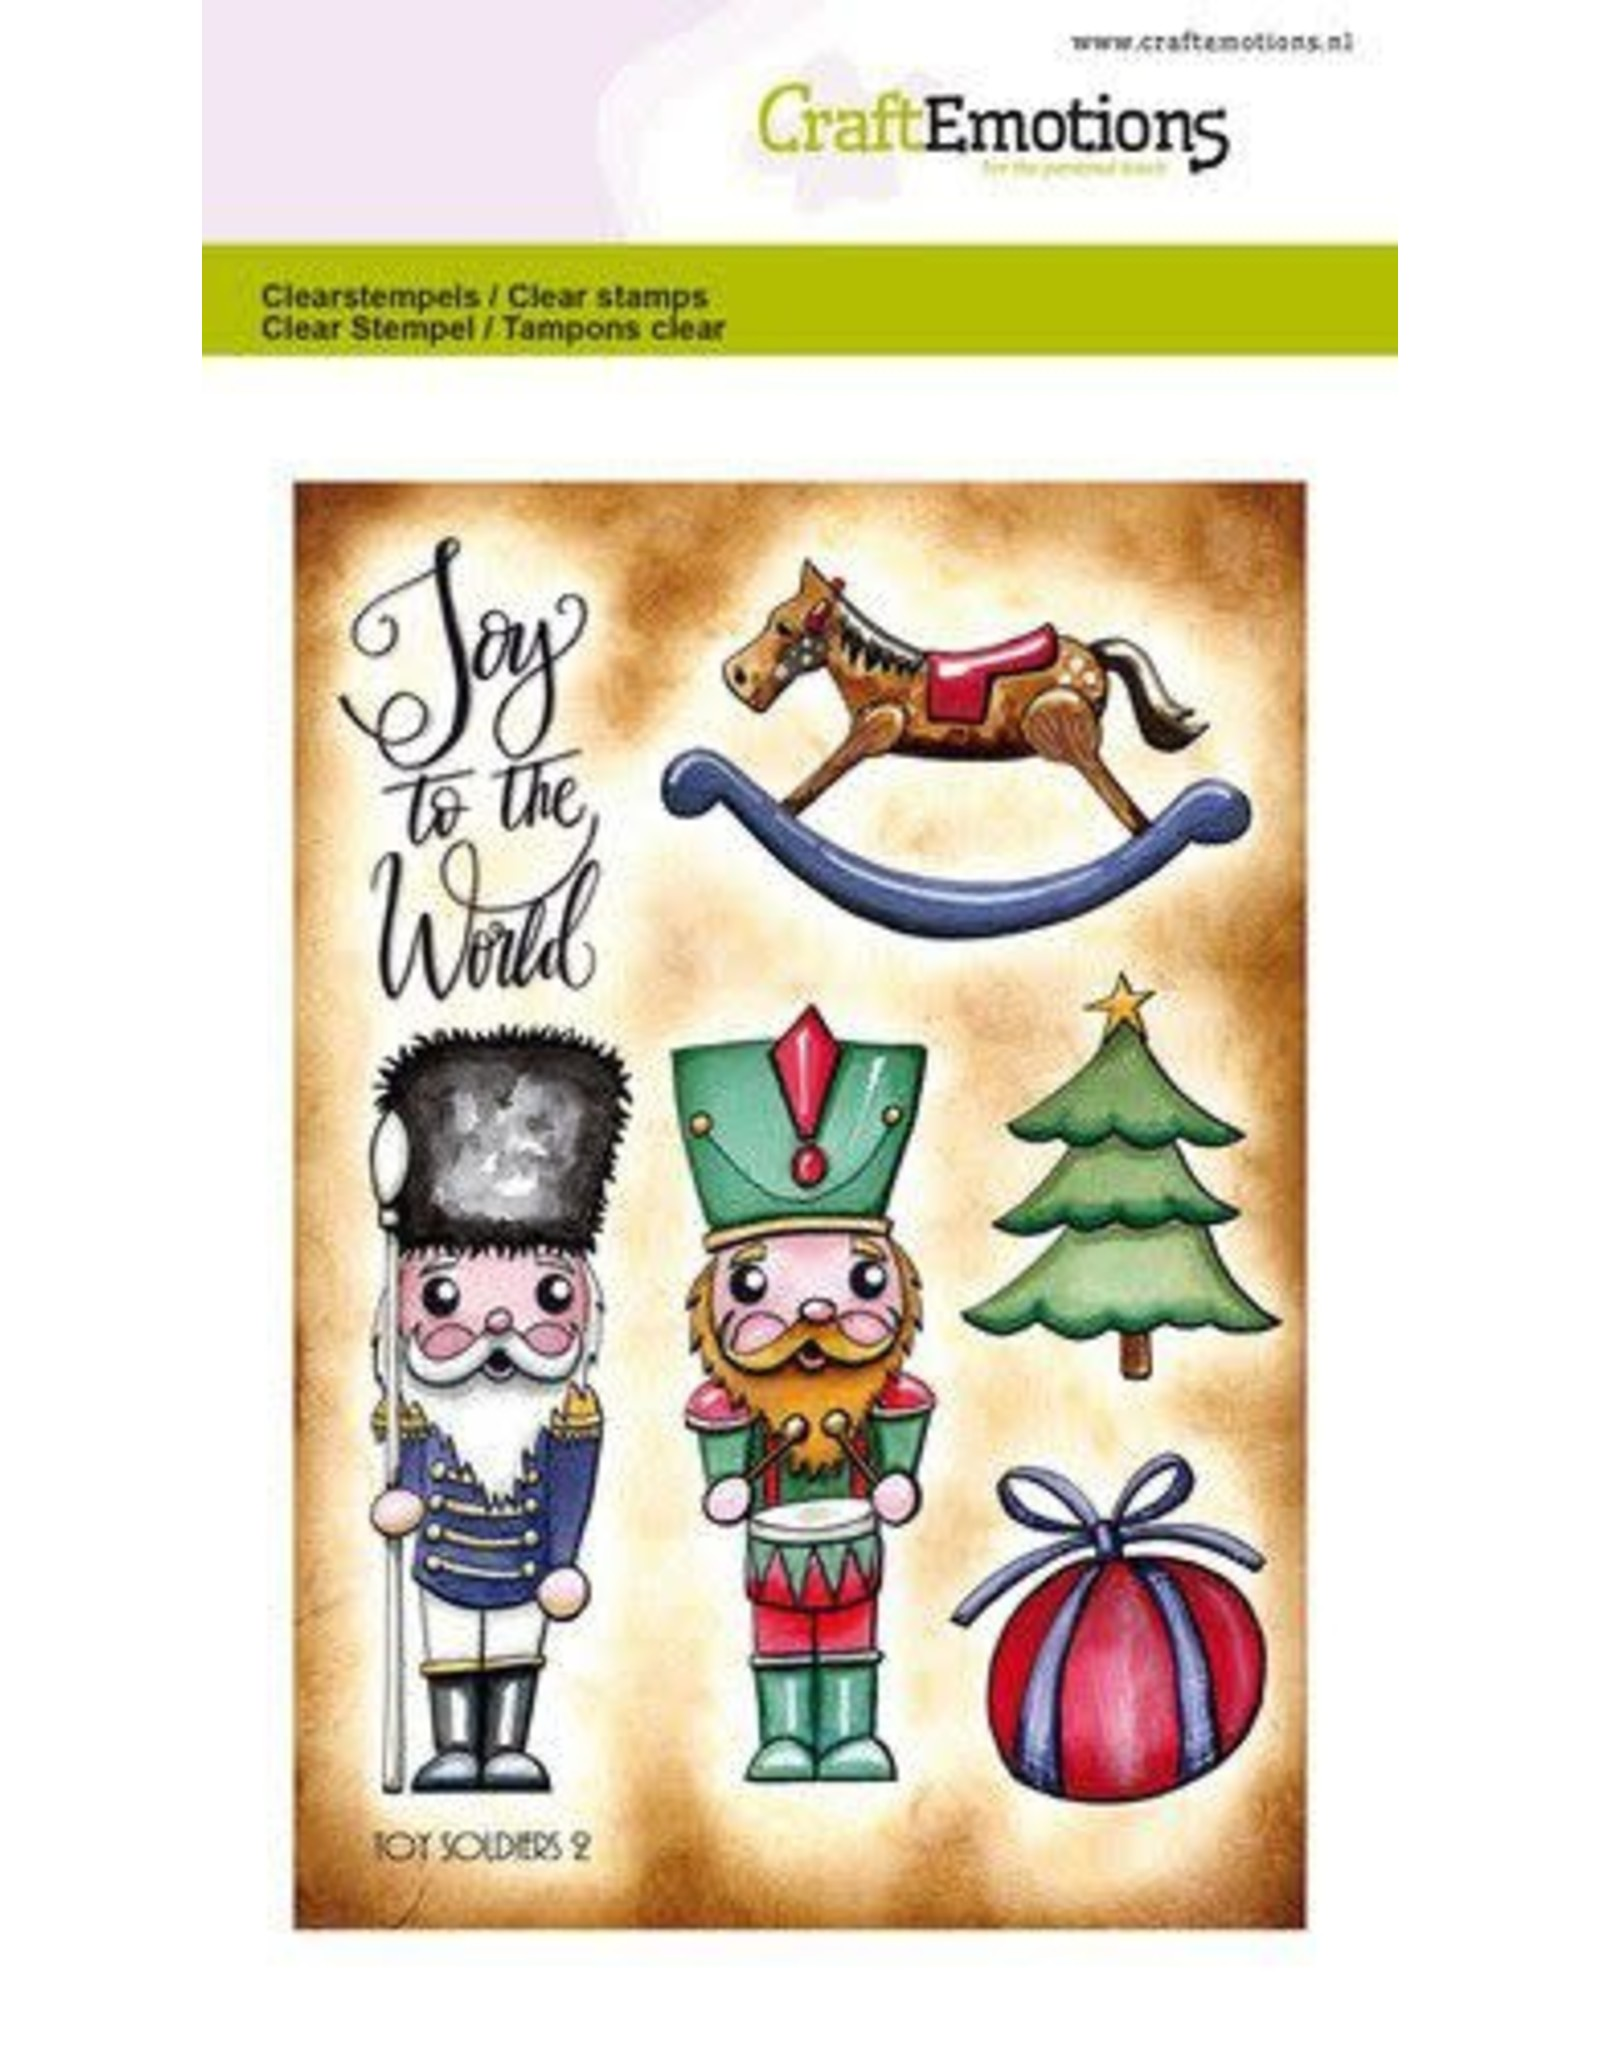 Craft Emotions CraftEmotions clearstamps A6 - Toy soldiers 2 Carla Creaties